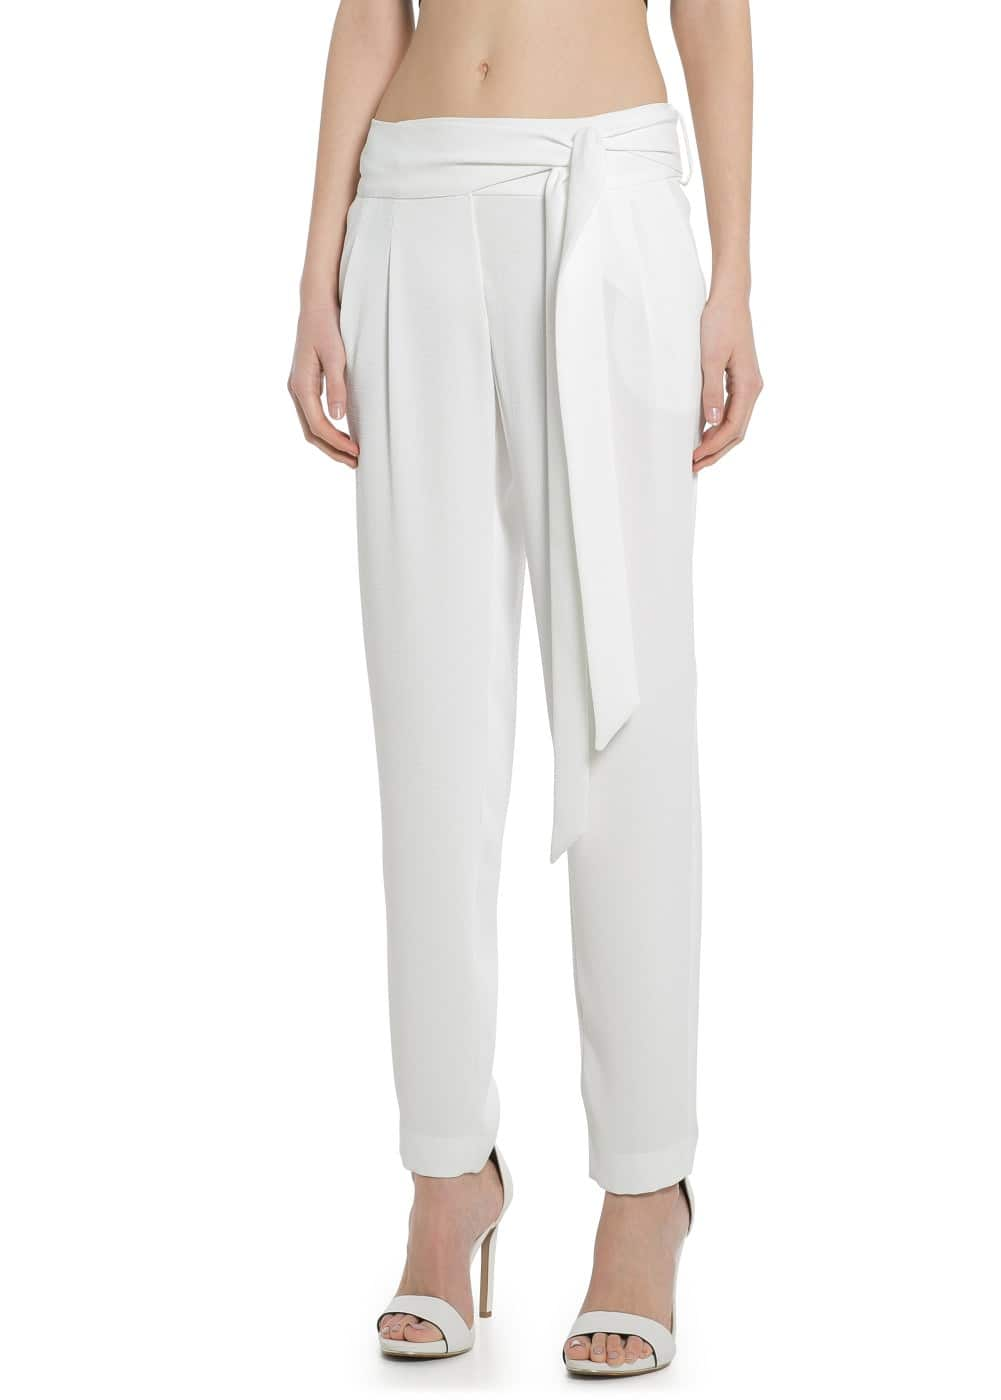 Textured flowy trousers